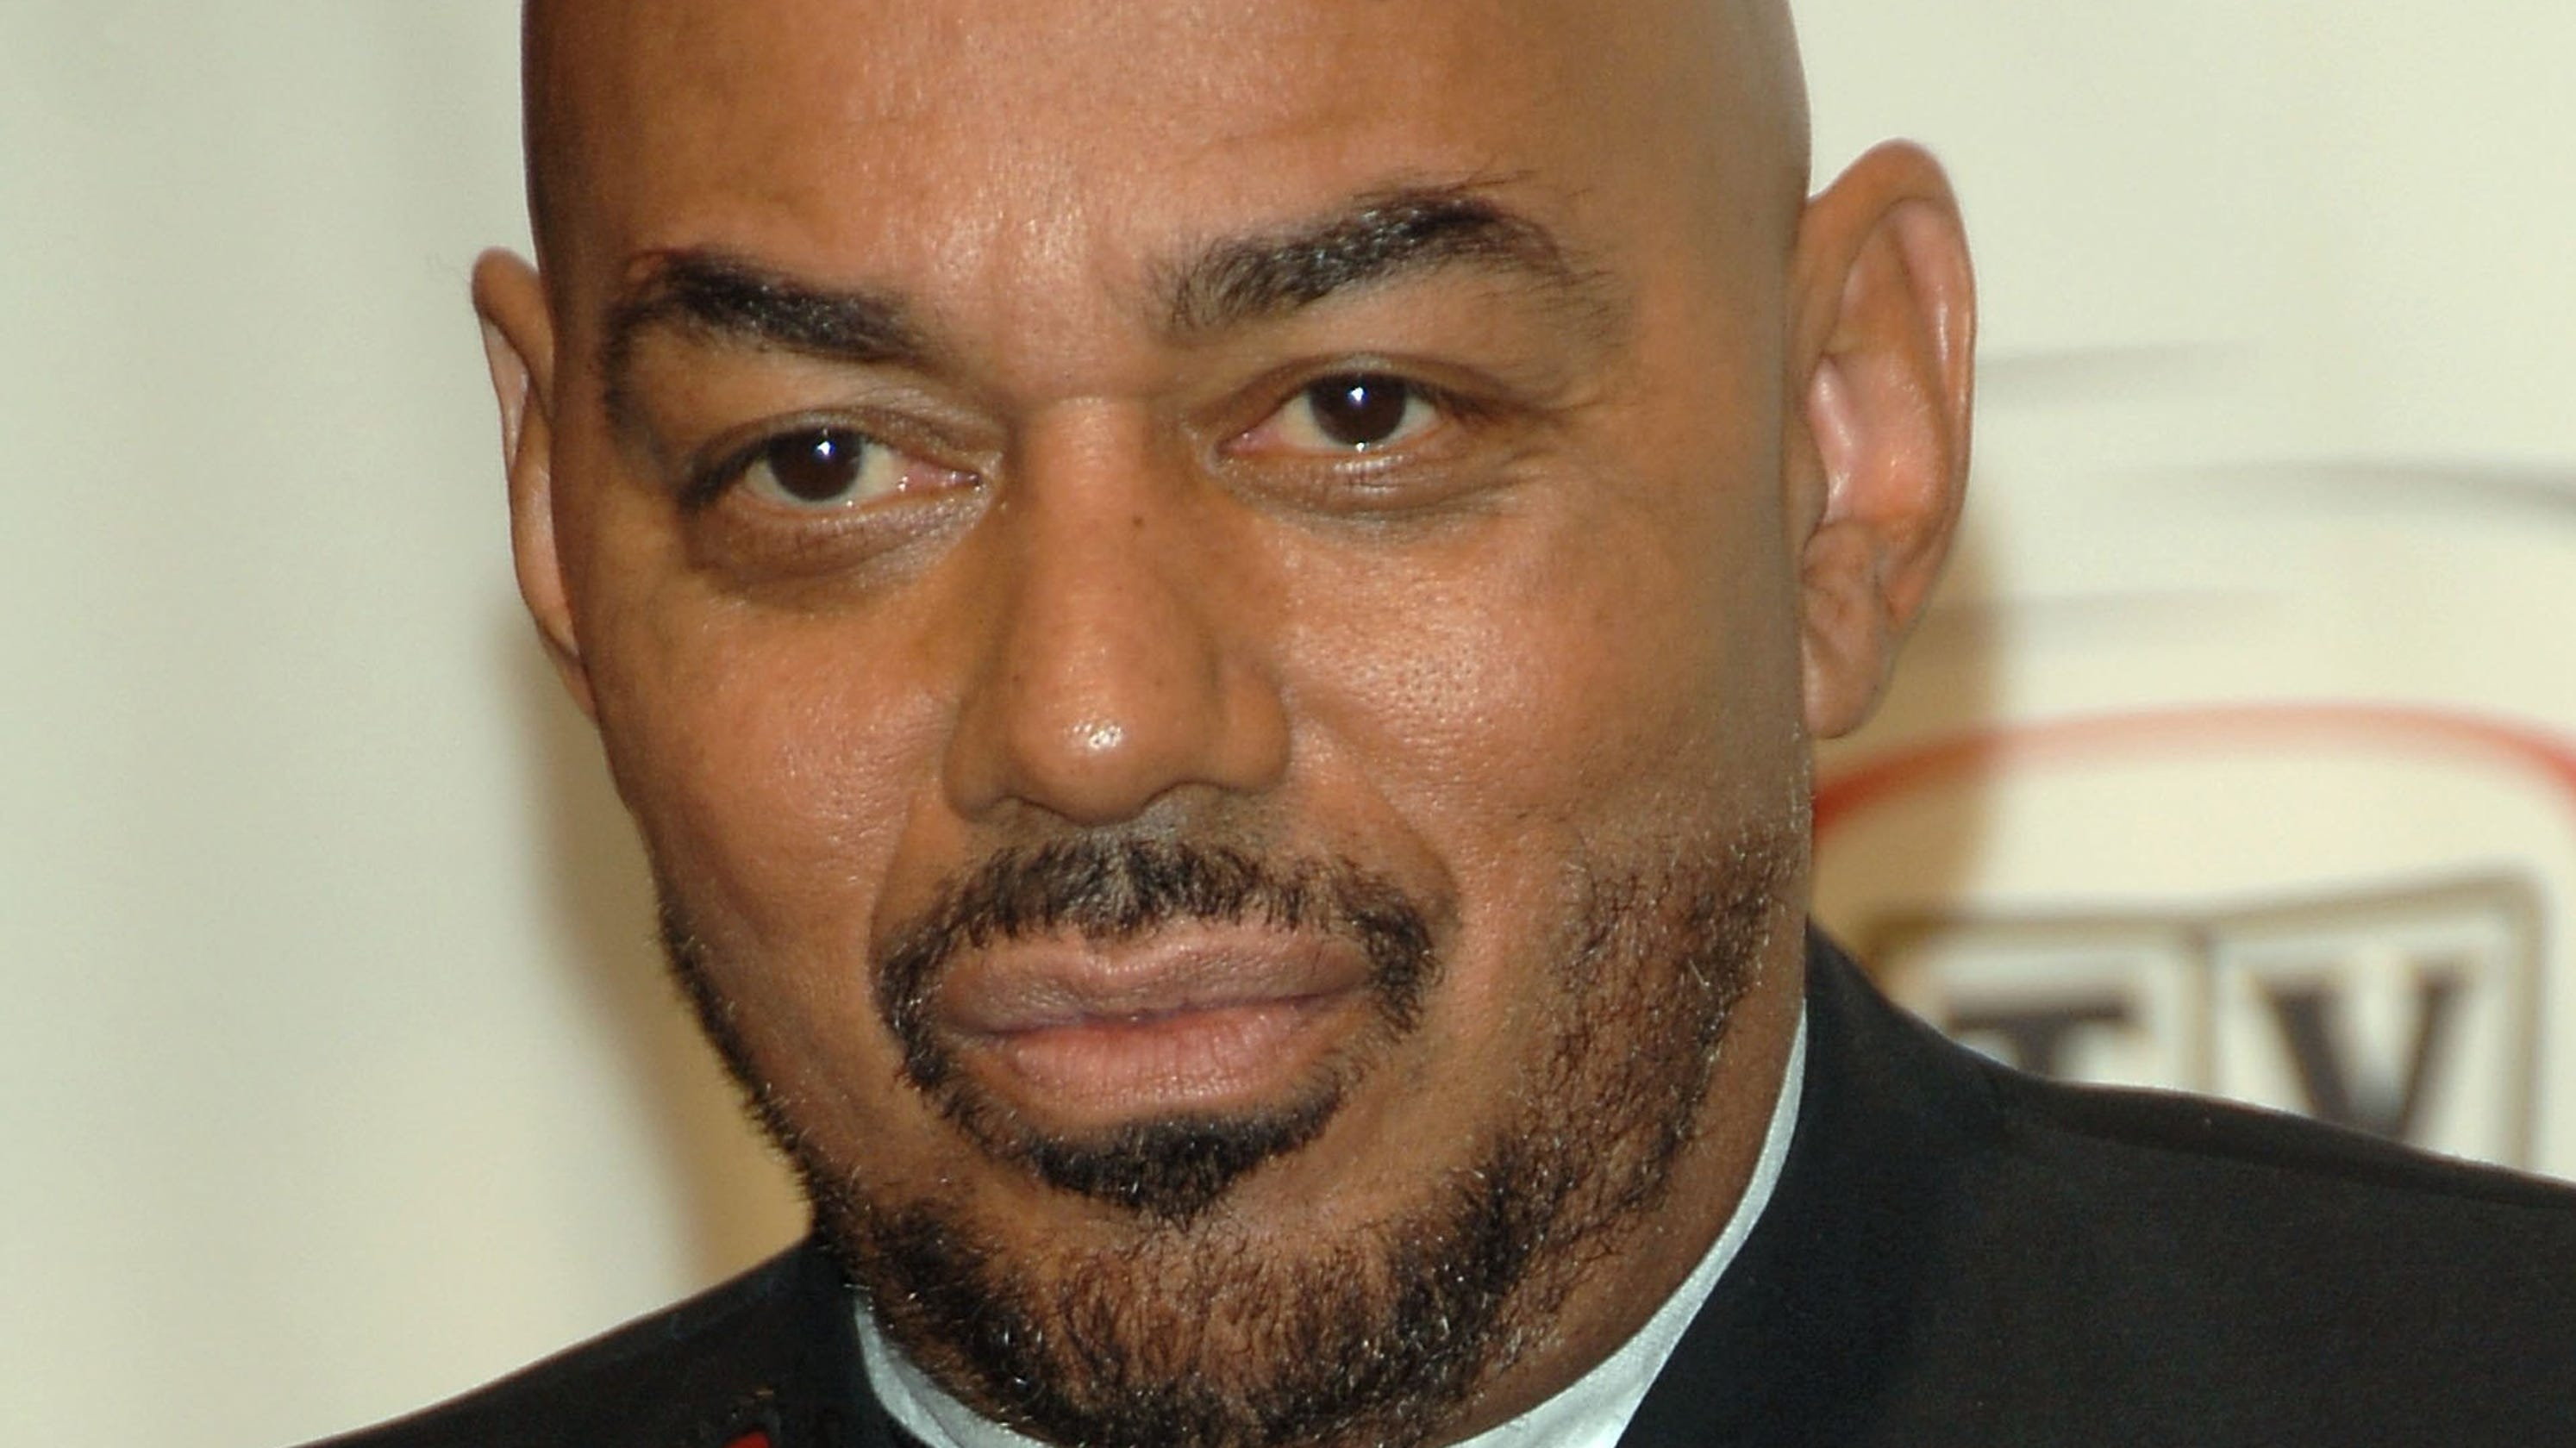 aecfb0a5 'Baby, Come to Me' singer James Ingram dies at 66